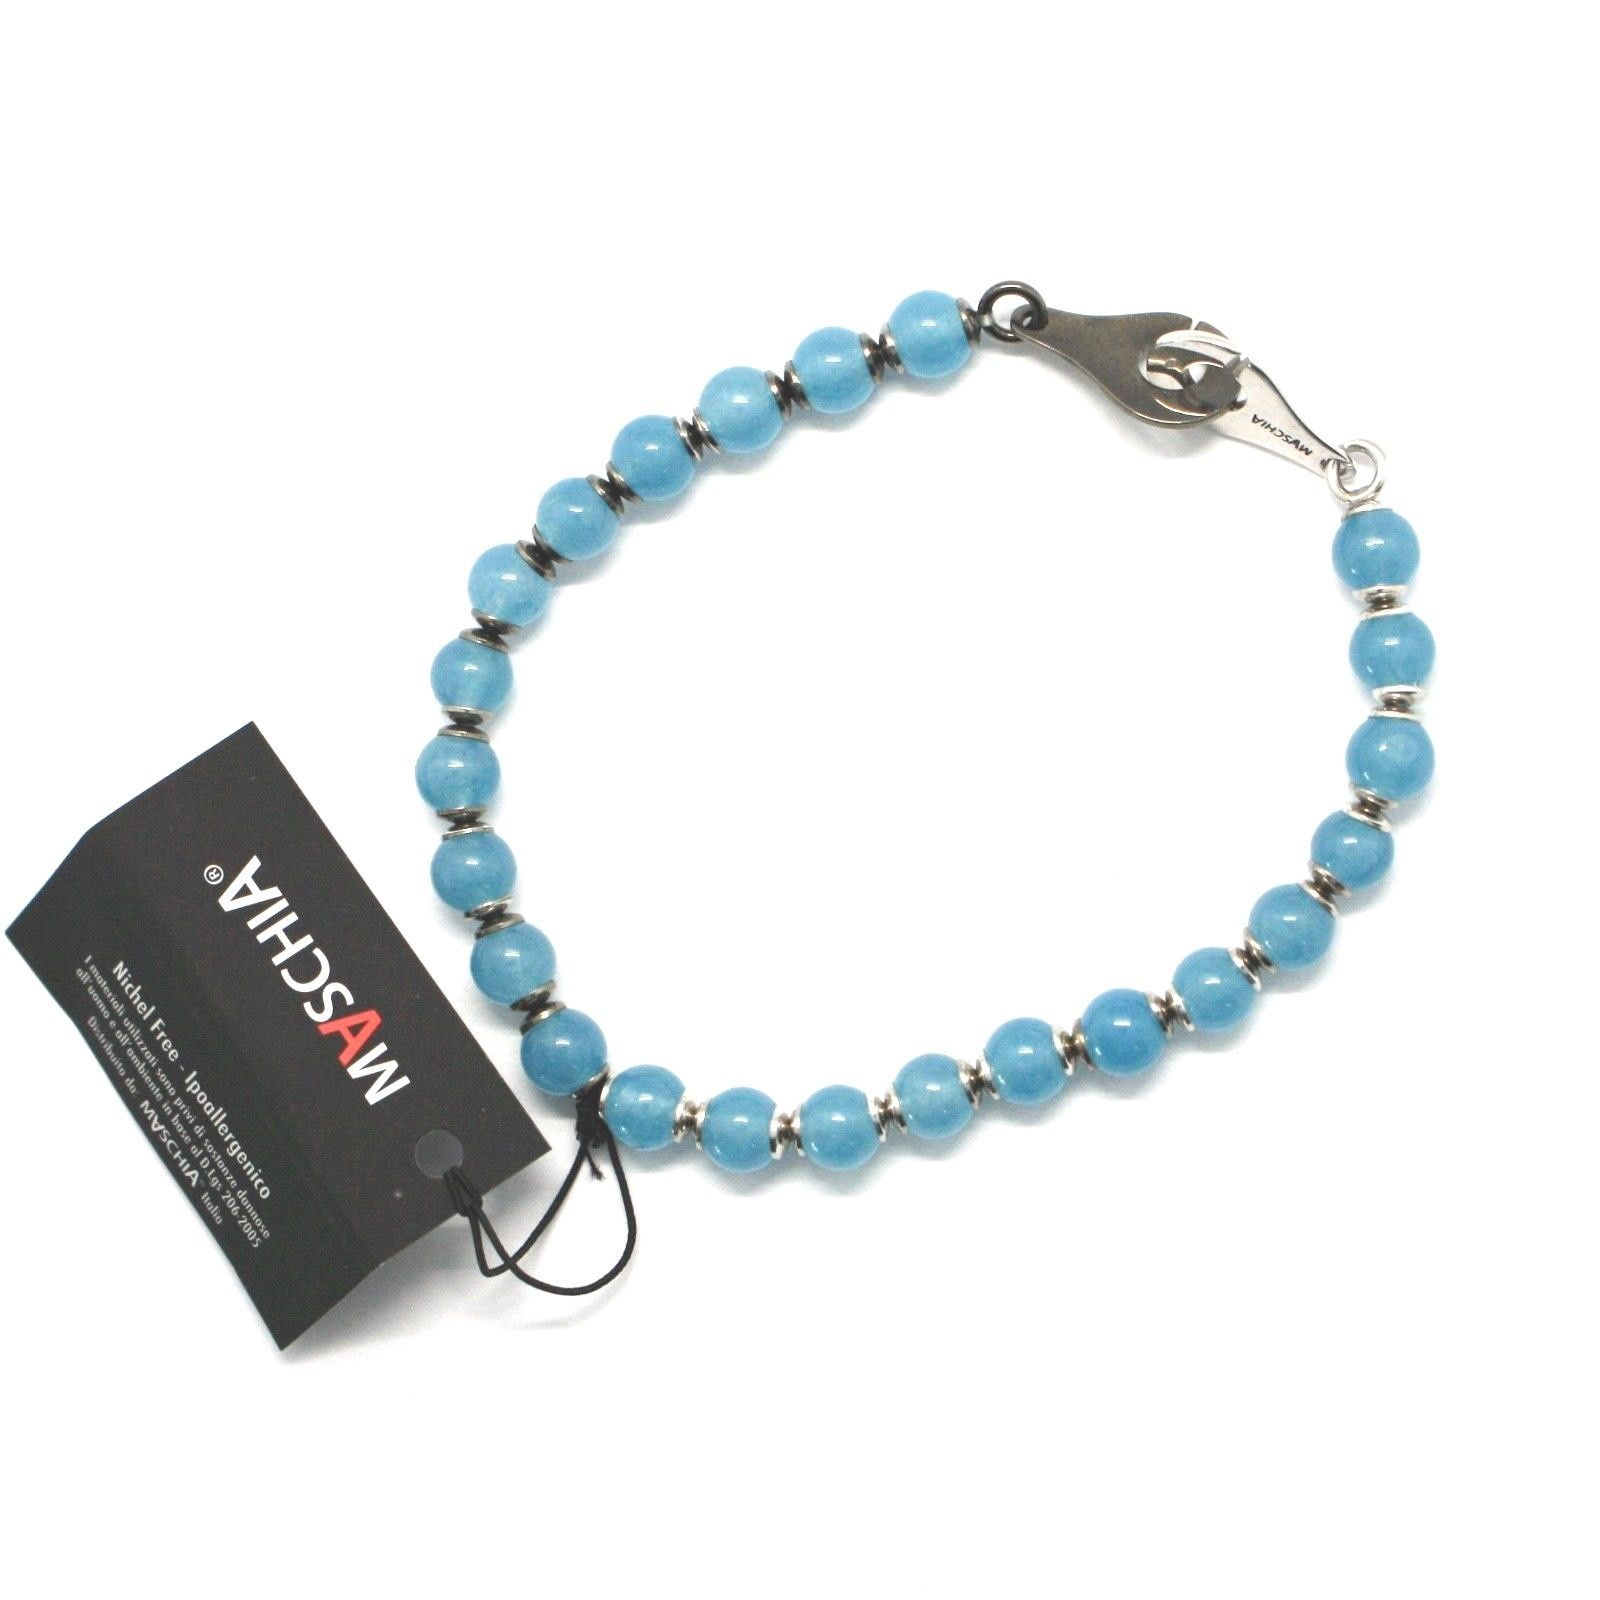 Silver 925 Bracelet round Aquamarine BSP-3 Made in Italy by Maschia